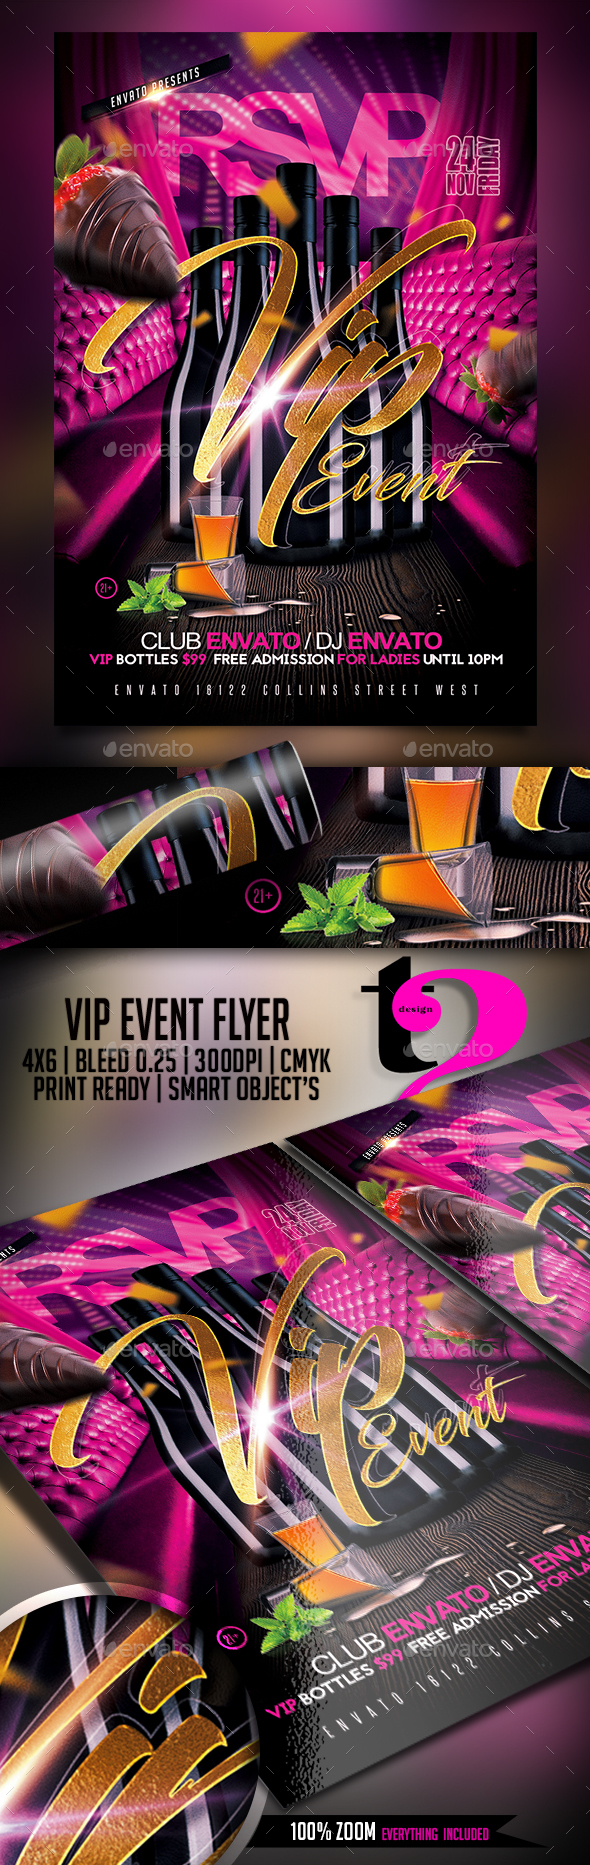 Vip Event Flyer Template - Clubs & Parties Events